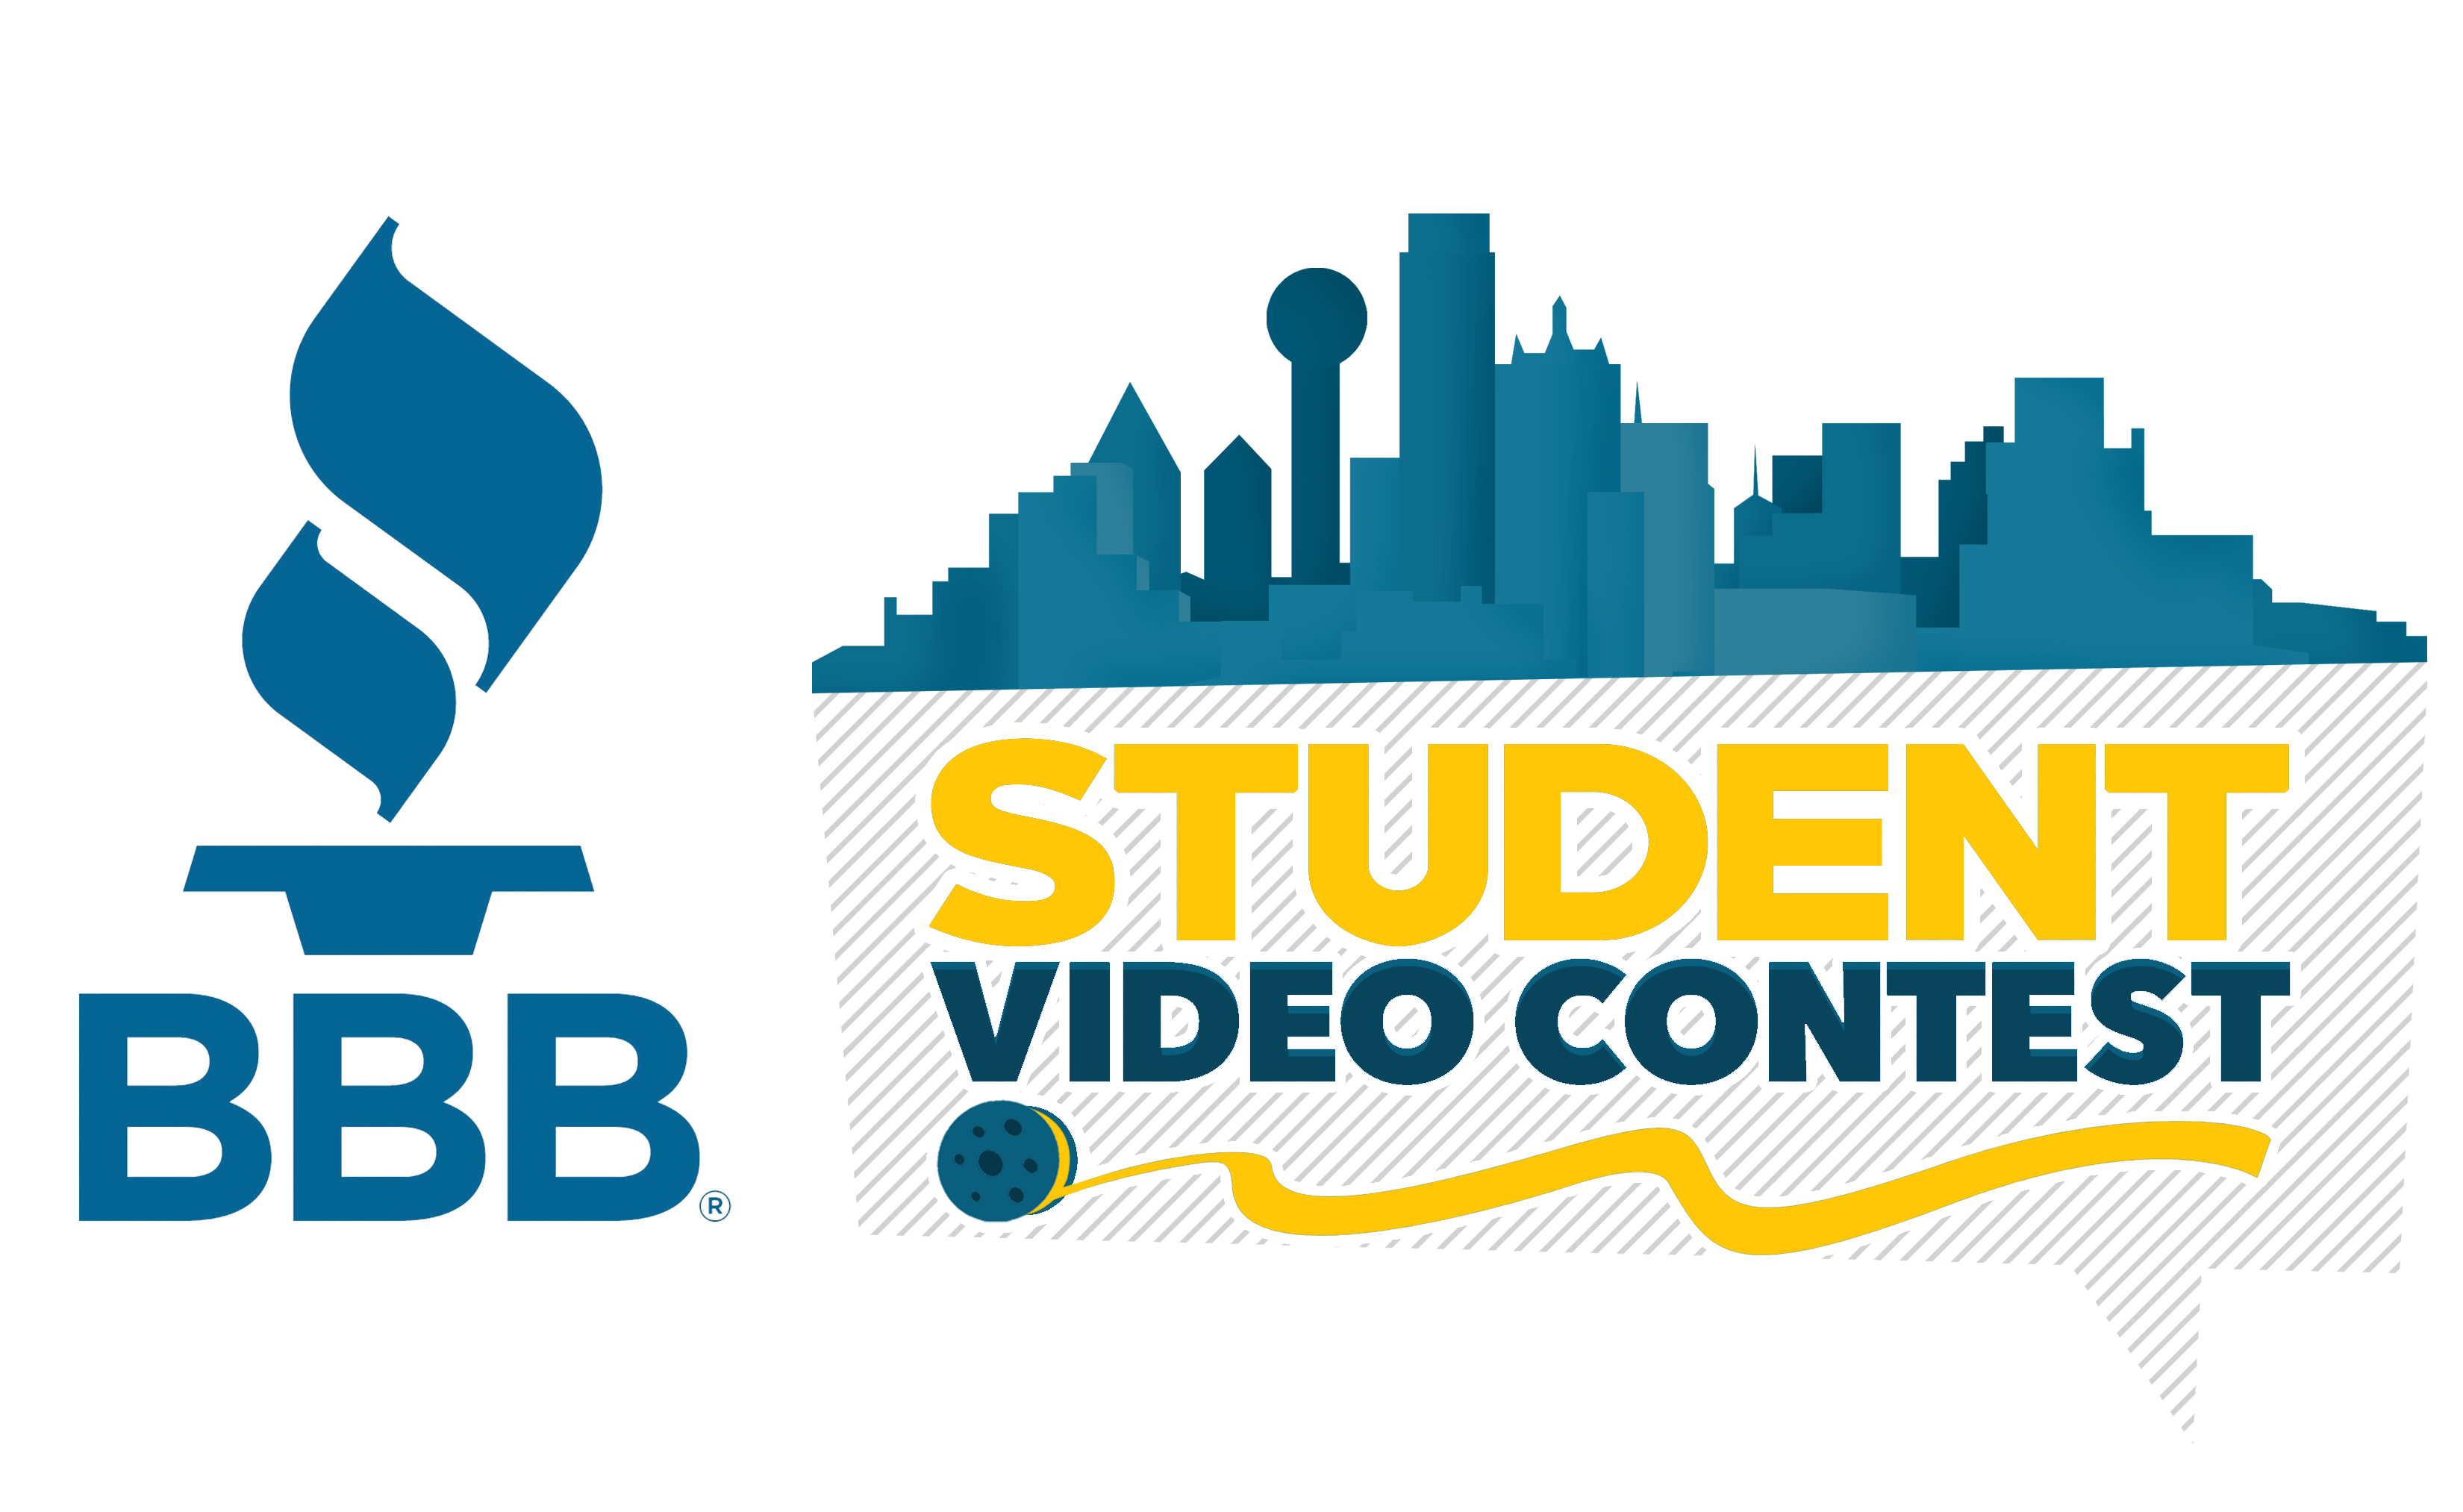 BBB Video Contest